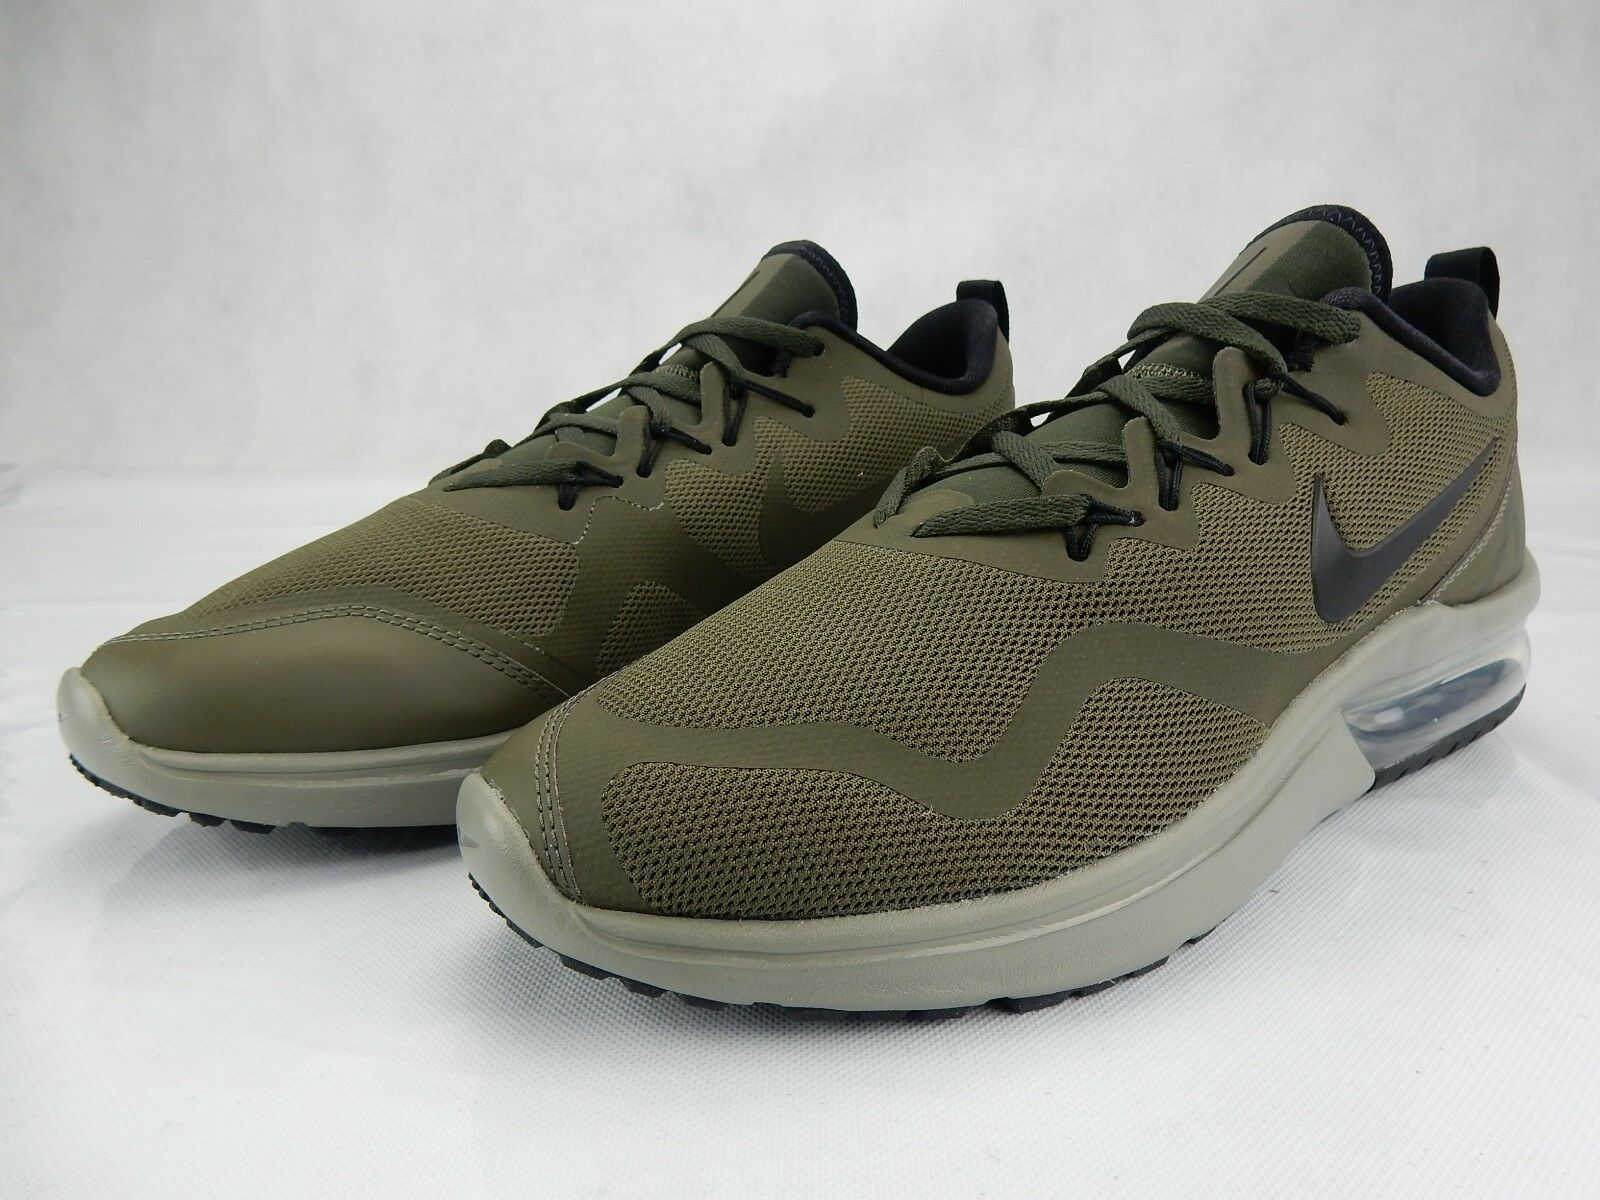 Nike Air Max Fury Cargo Khaki Black AA5739-300 Mens Shoes S Size 10 New Sneakers